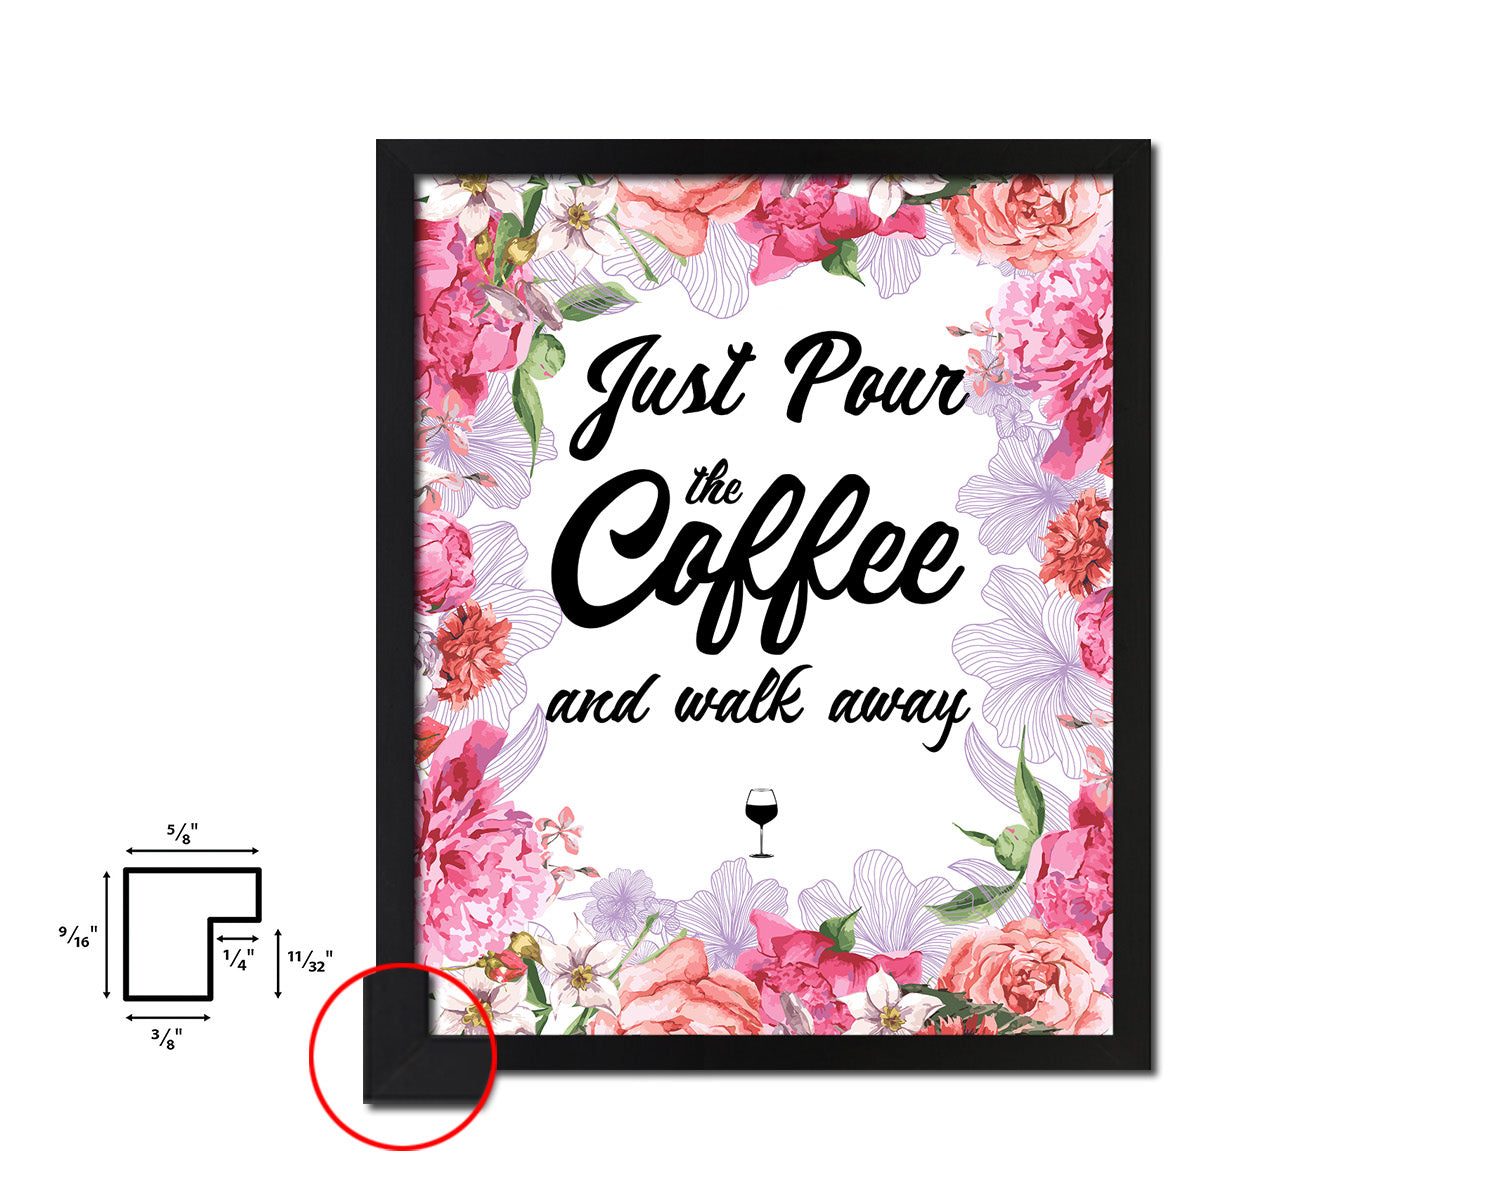 Just pour the coffee & walk away Quotes Framed Print Home Decor Wall Art Gifts